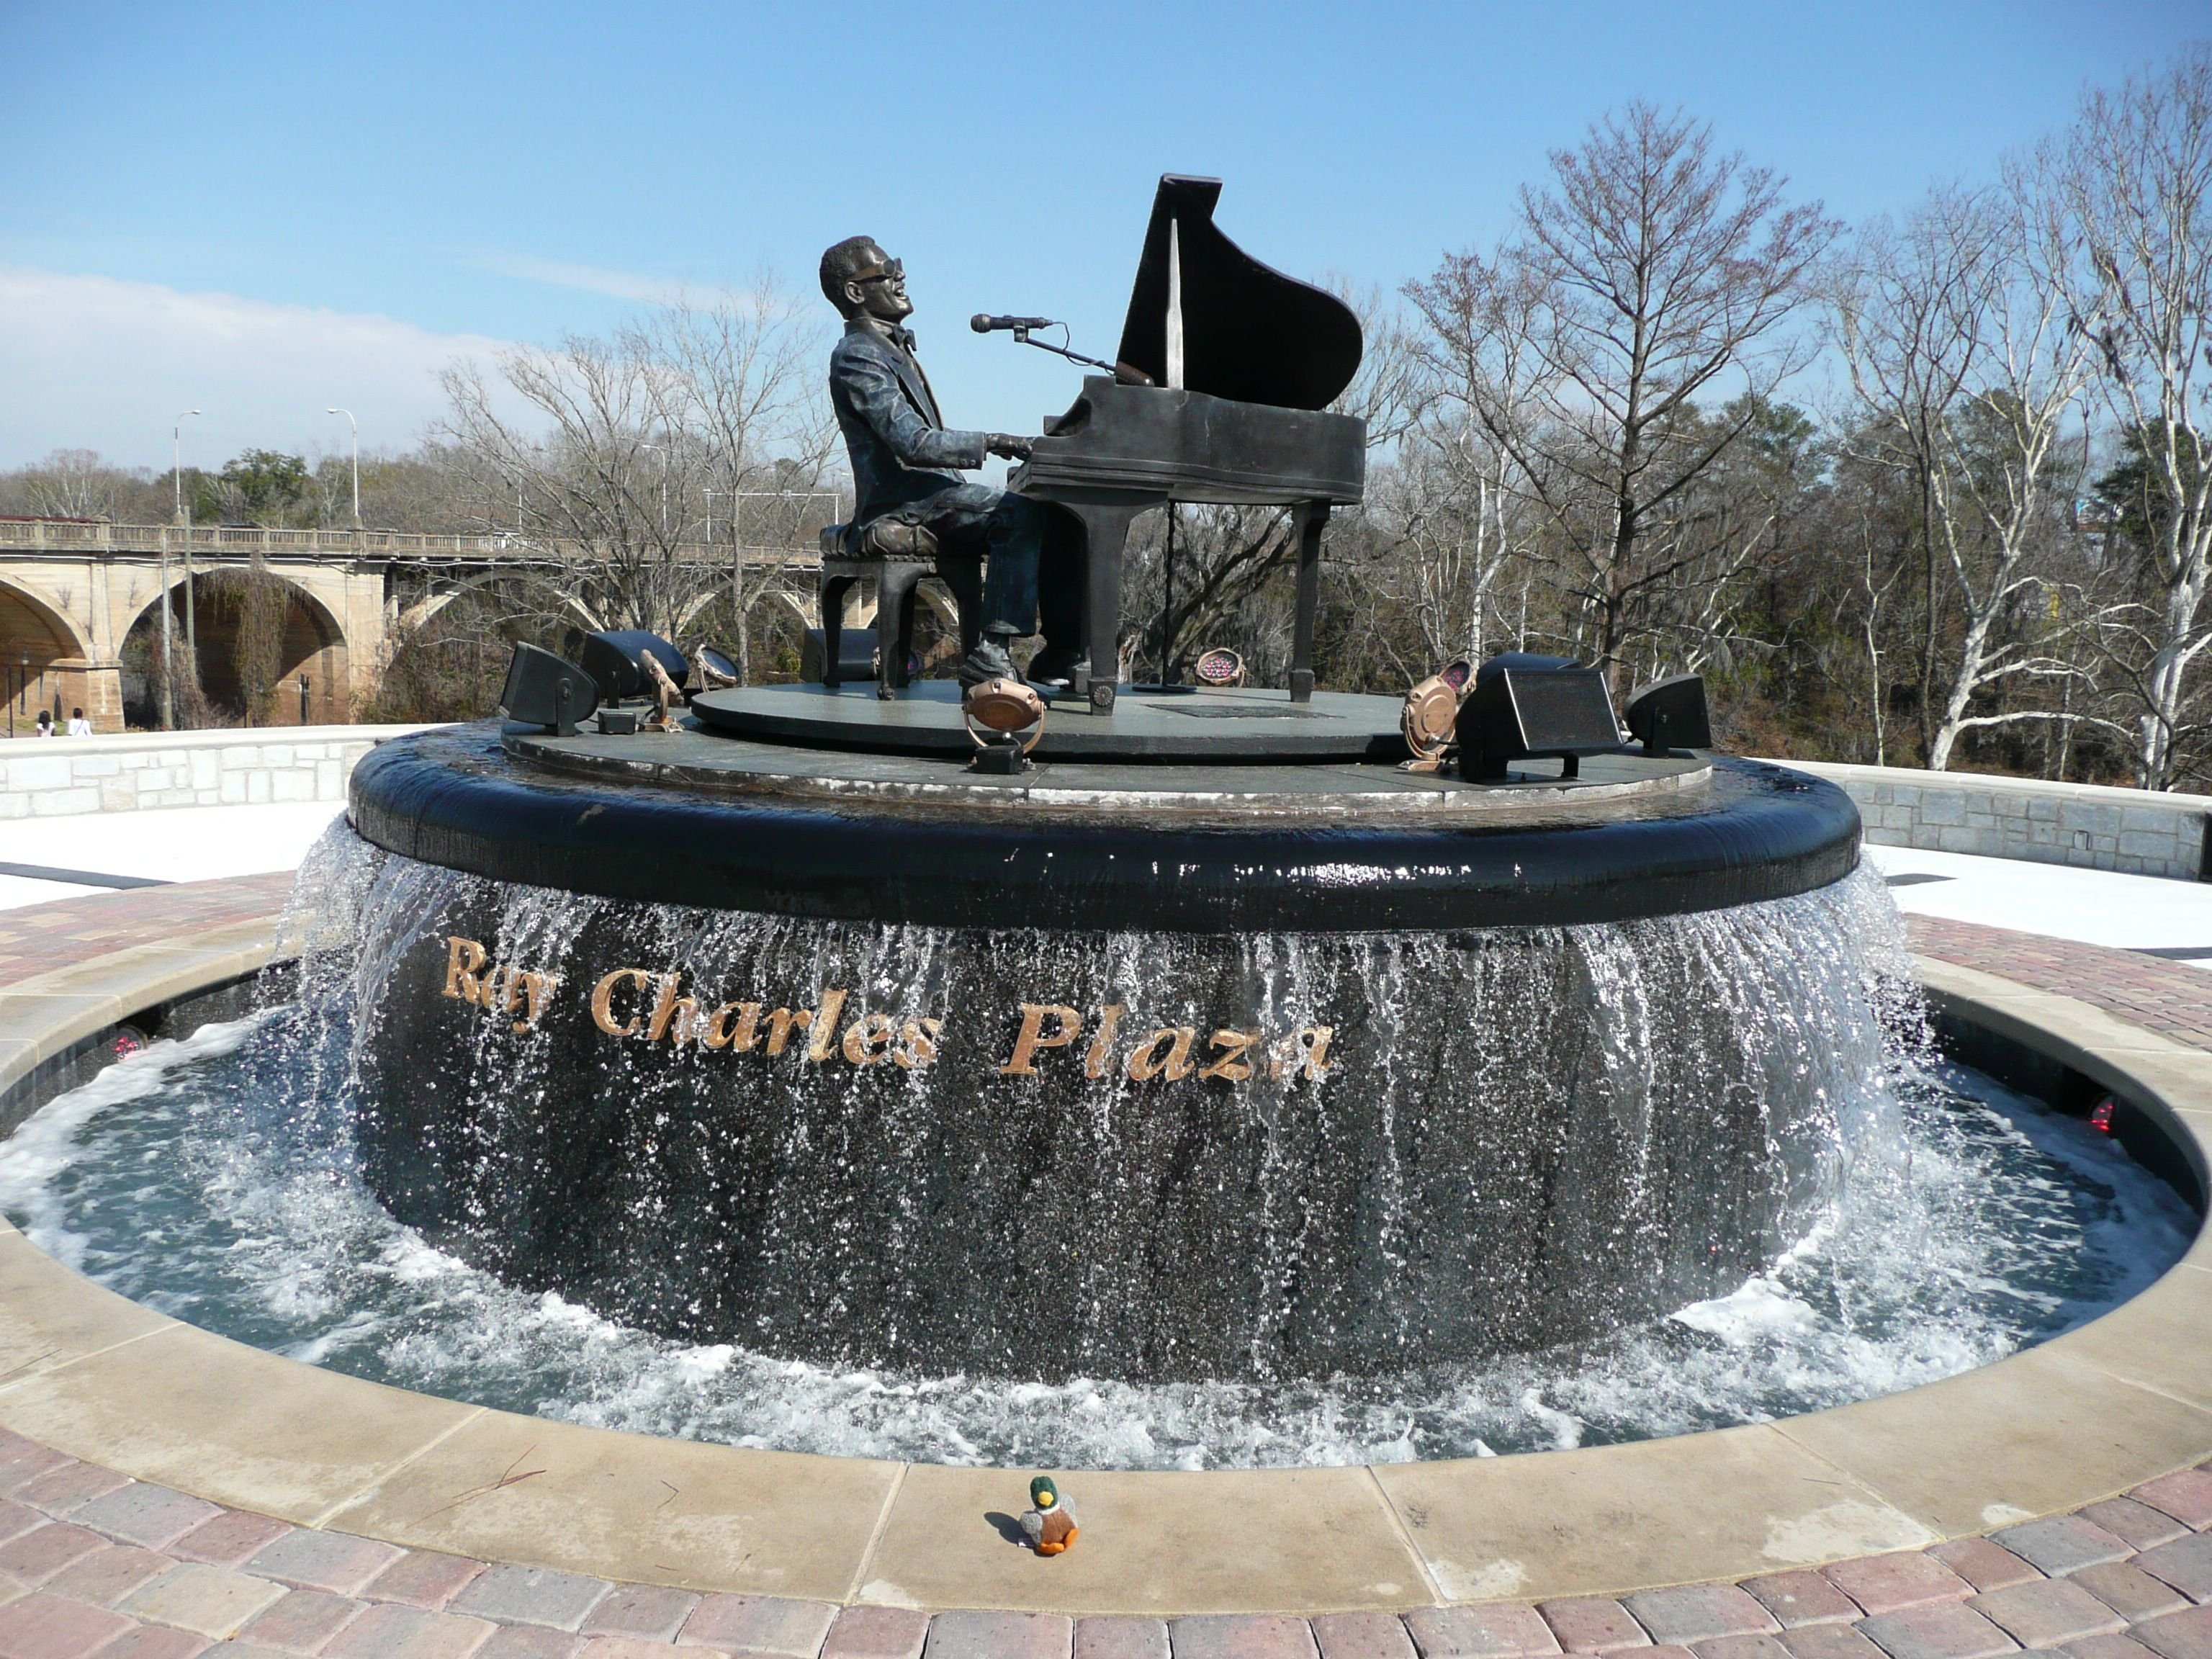 Ray Charles Plaza in throughout the day